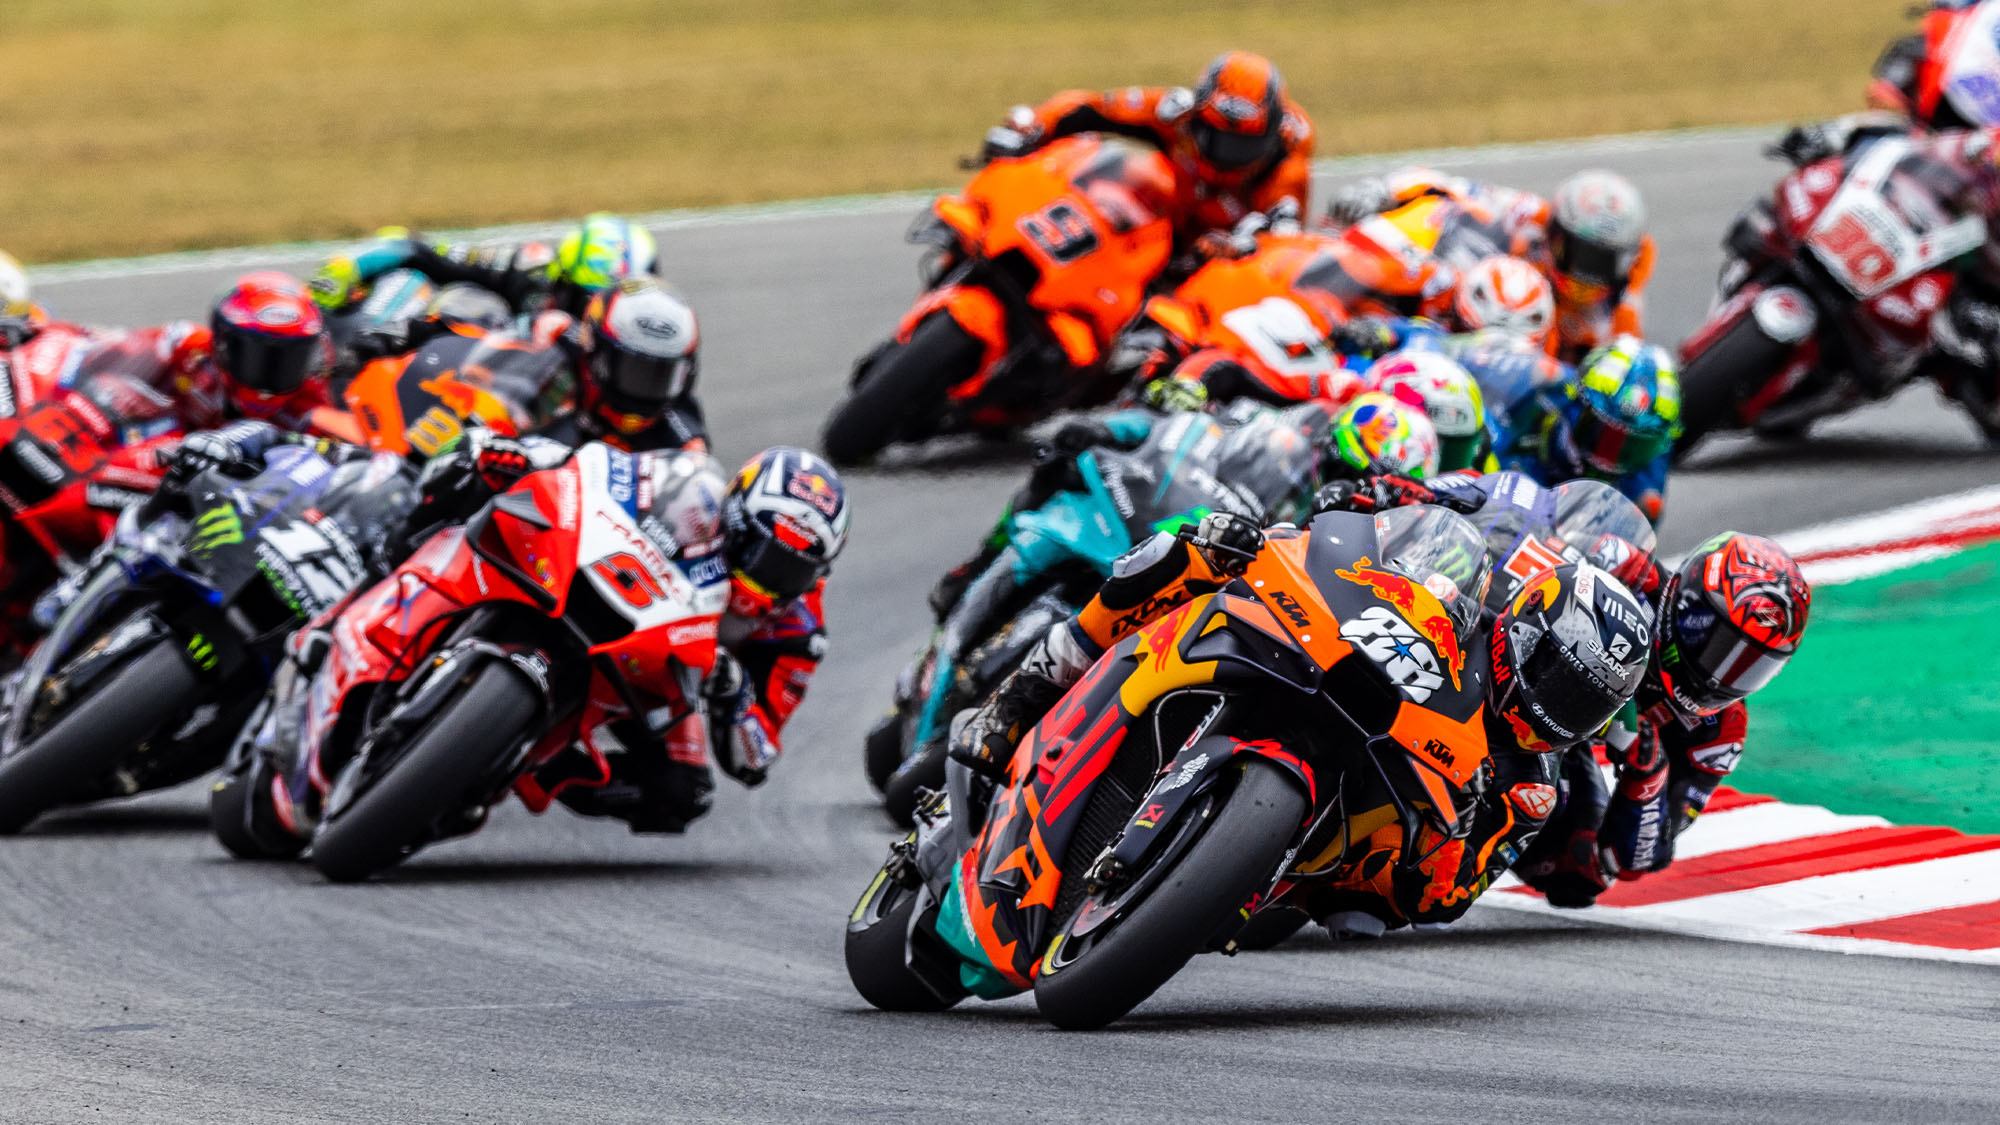 Miguel Oliveira leads at the 2021 MotoGP Catalan Grand prix